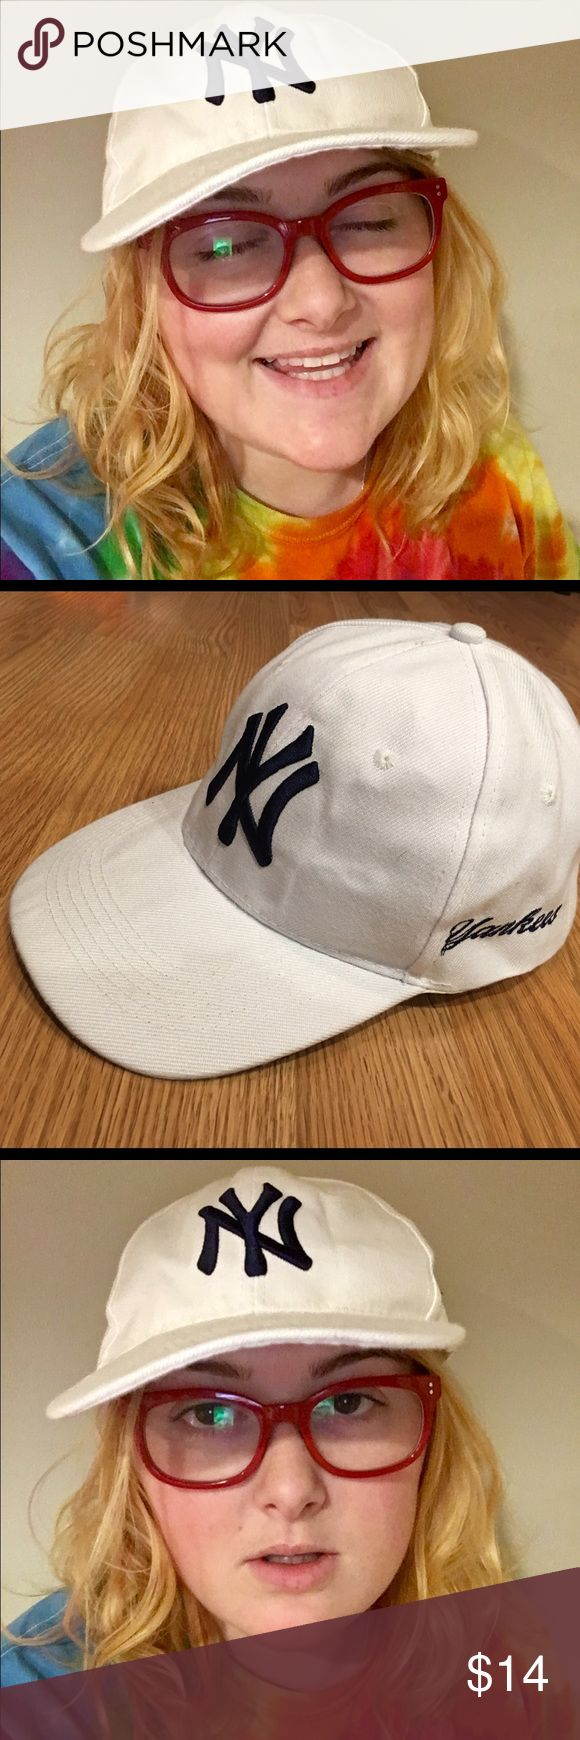 New York Yankees white baseball cap New York Yankees white baseball cap with navy logo. Adjustable Velcro closure in the back. Never been worn. Super comfy, cute & hipster Accessories Hats